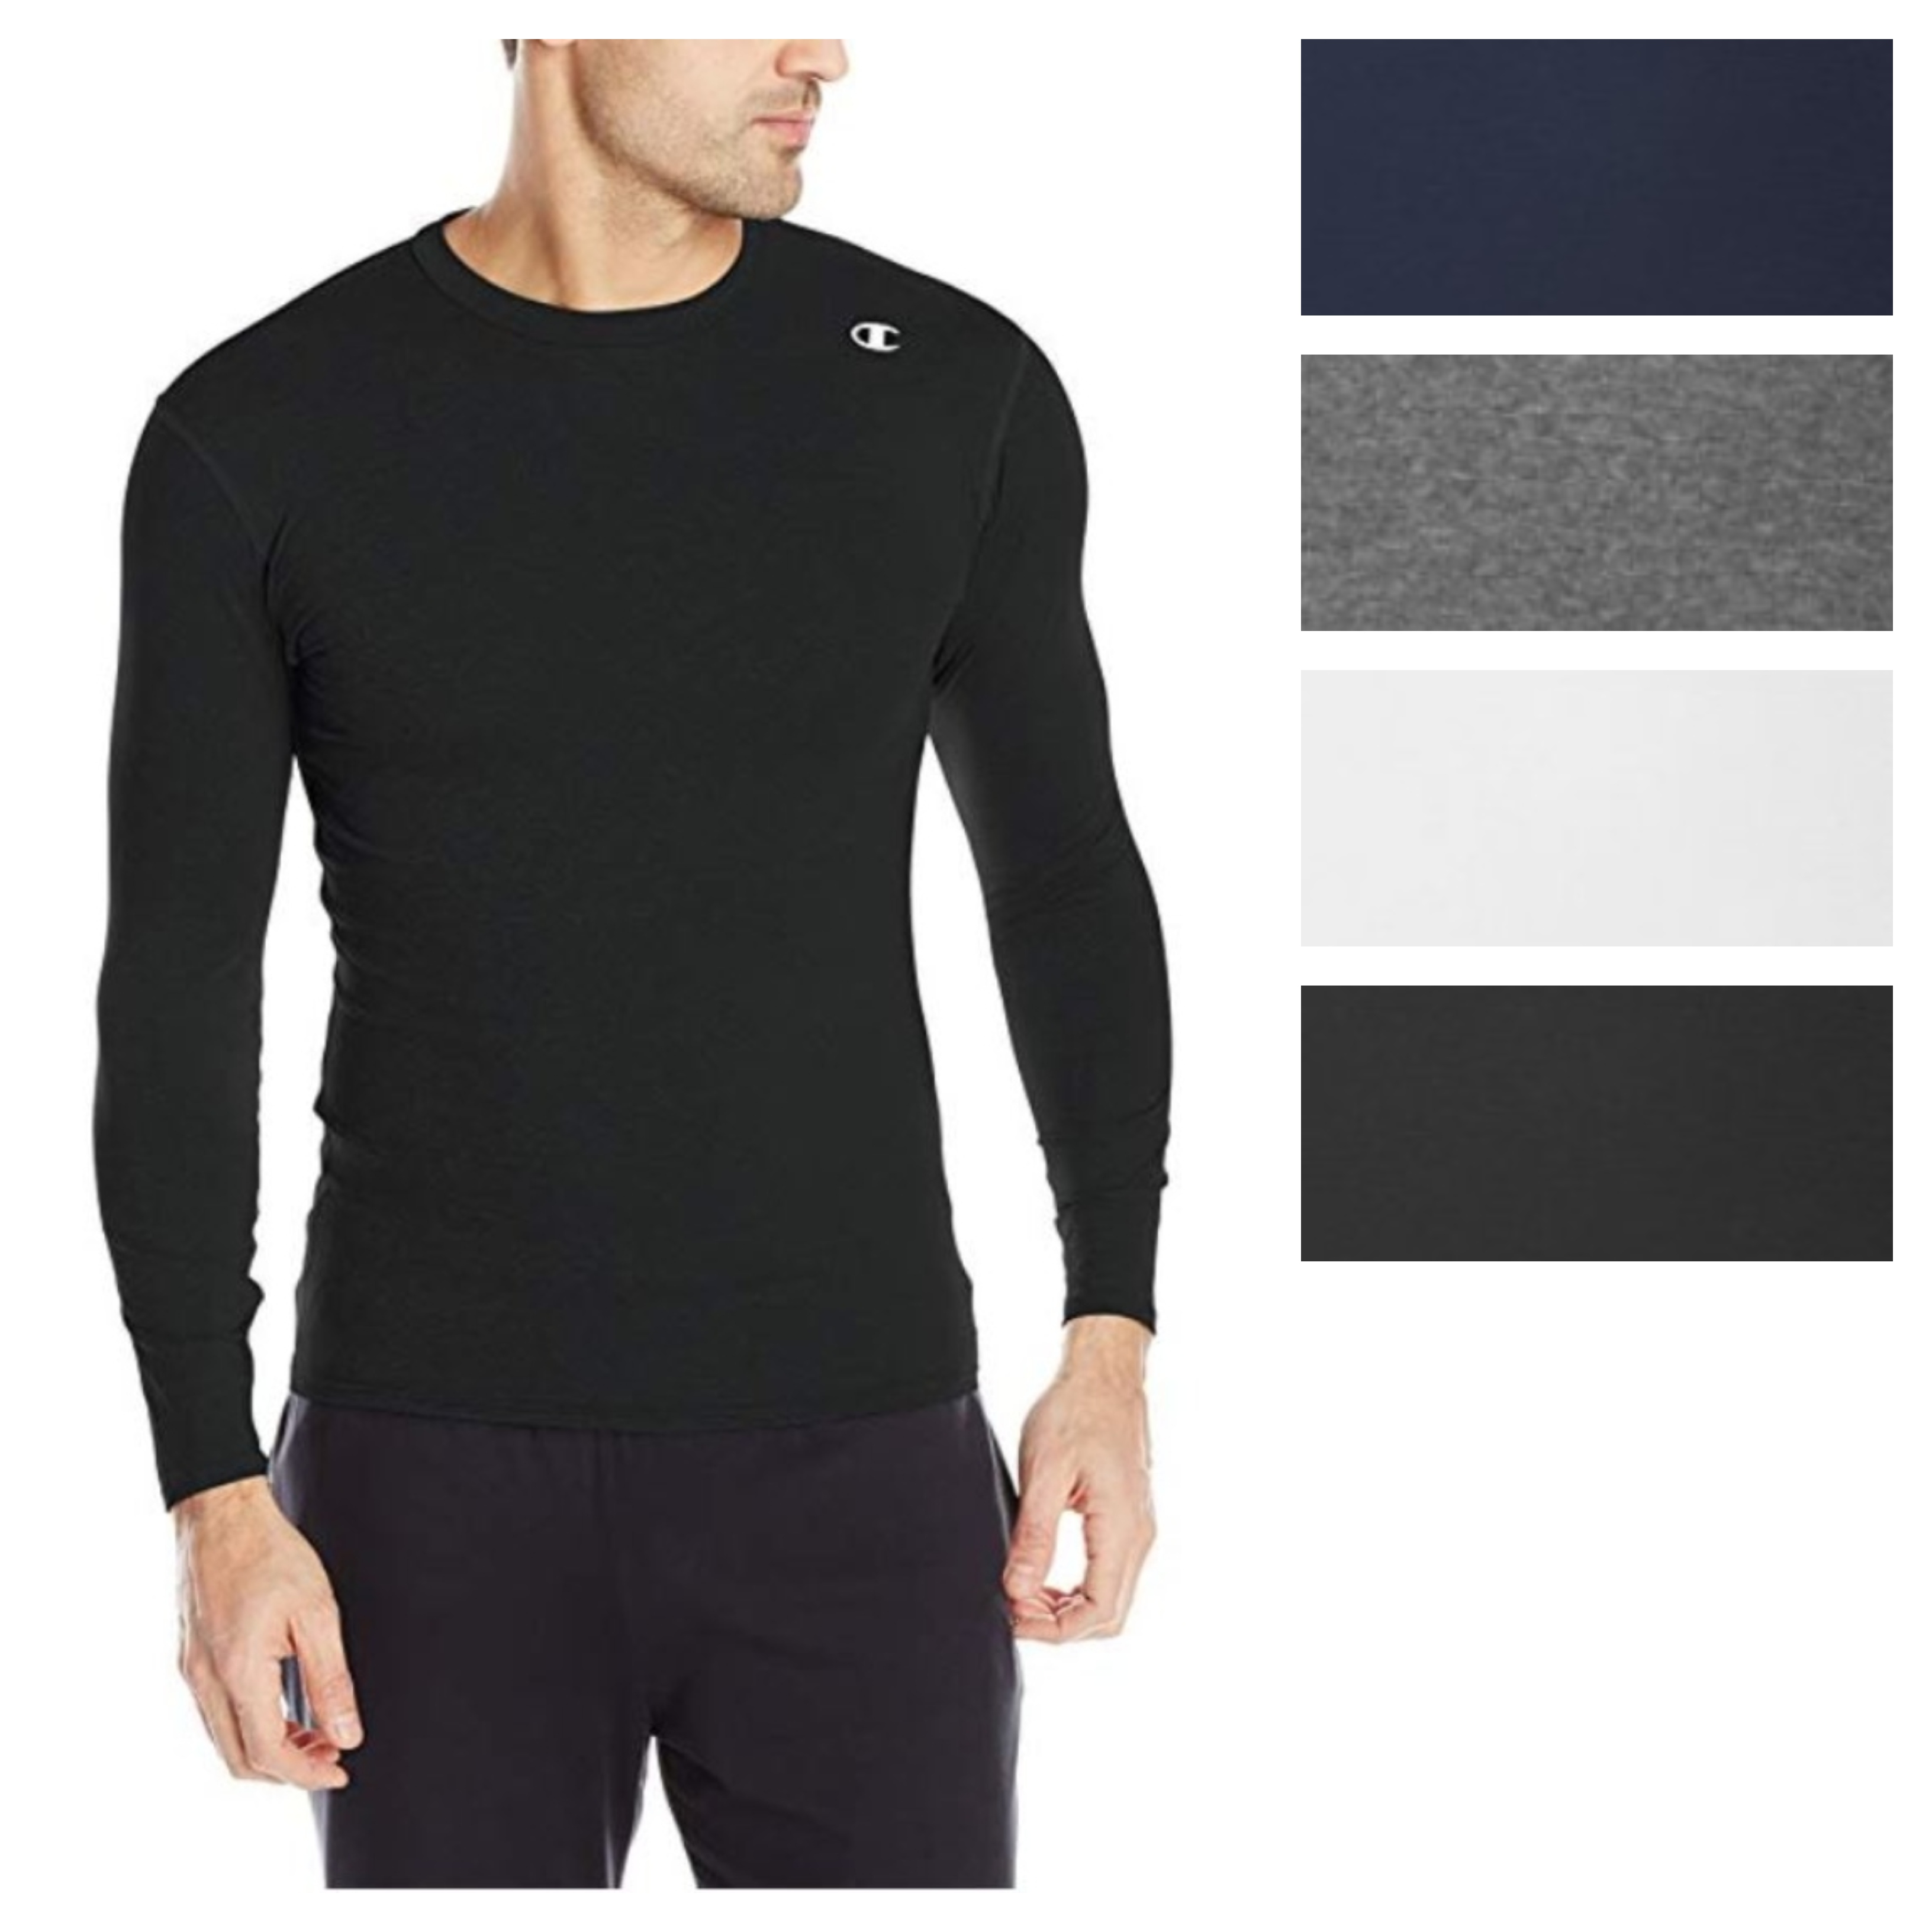 outlet online choose latest price Details about Champion Men's Double Dry Compression T-Shirt Long-Sleeve  Athletic Baselayer Tee